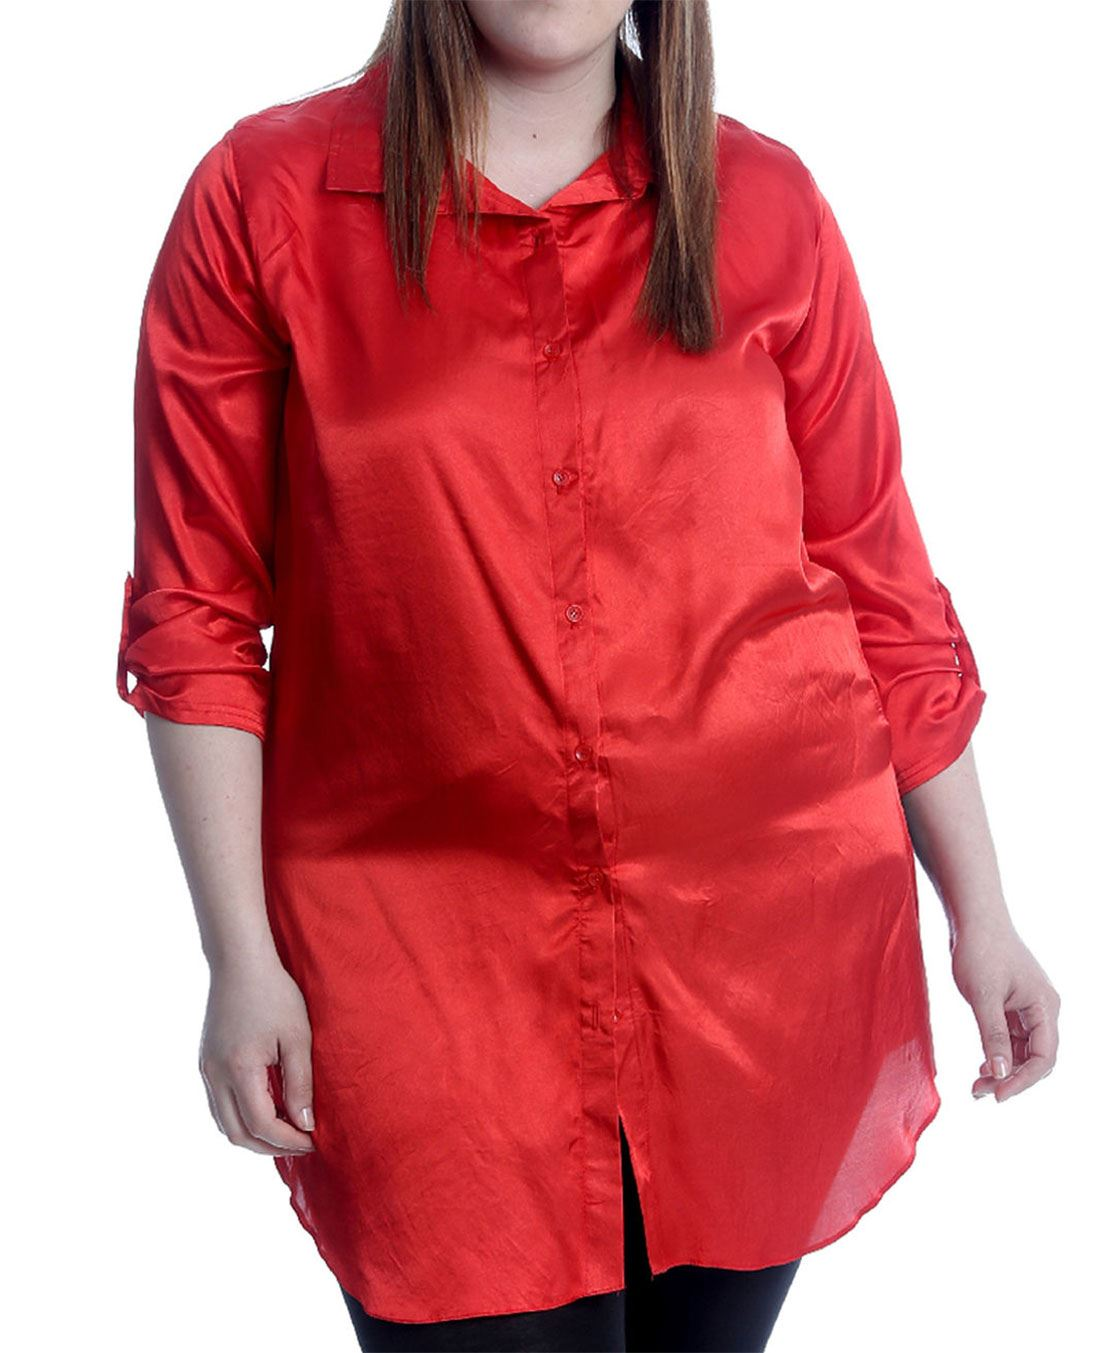 Womens-Plain-Satin-Shiny-Button-Collared-Shirt-Ladies-Long-Sleeve-Plus-Size-Top